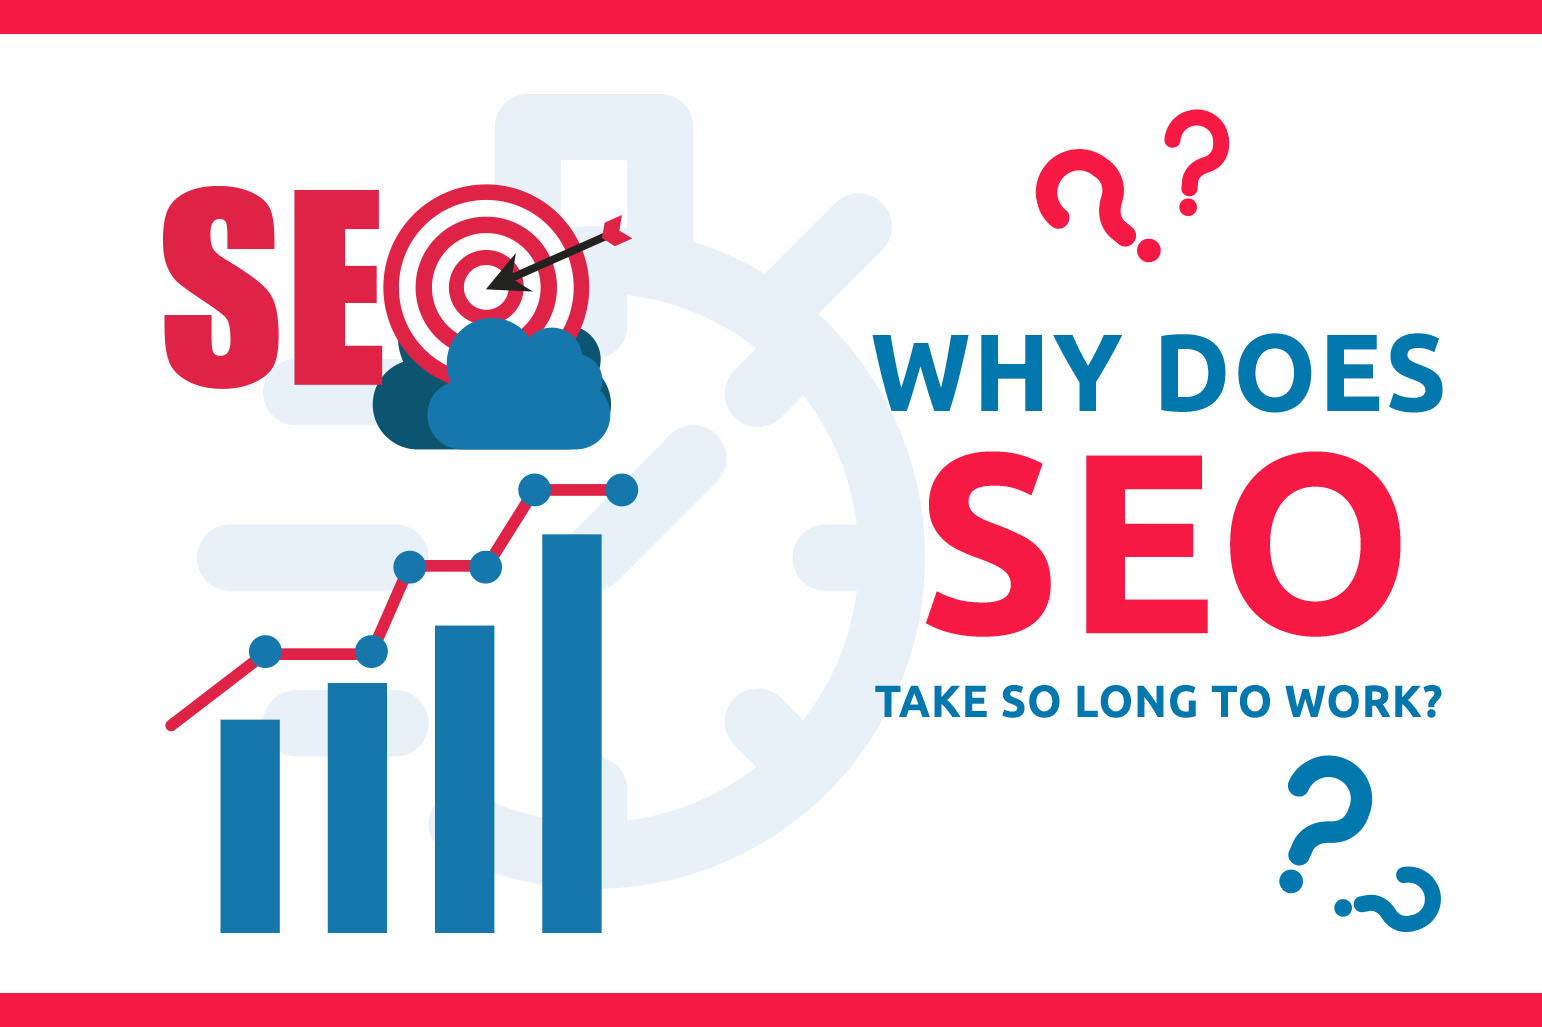 Why Does SEO Take So Long To Work?